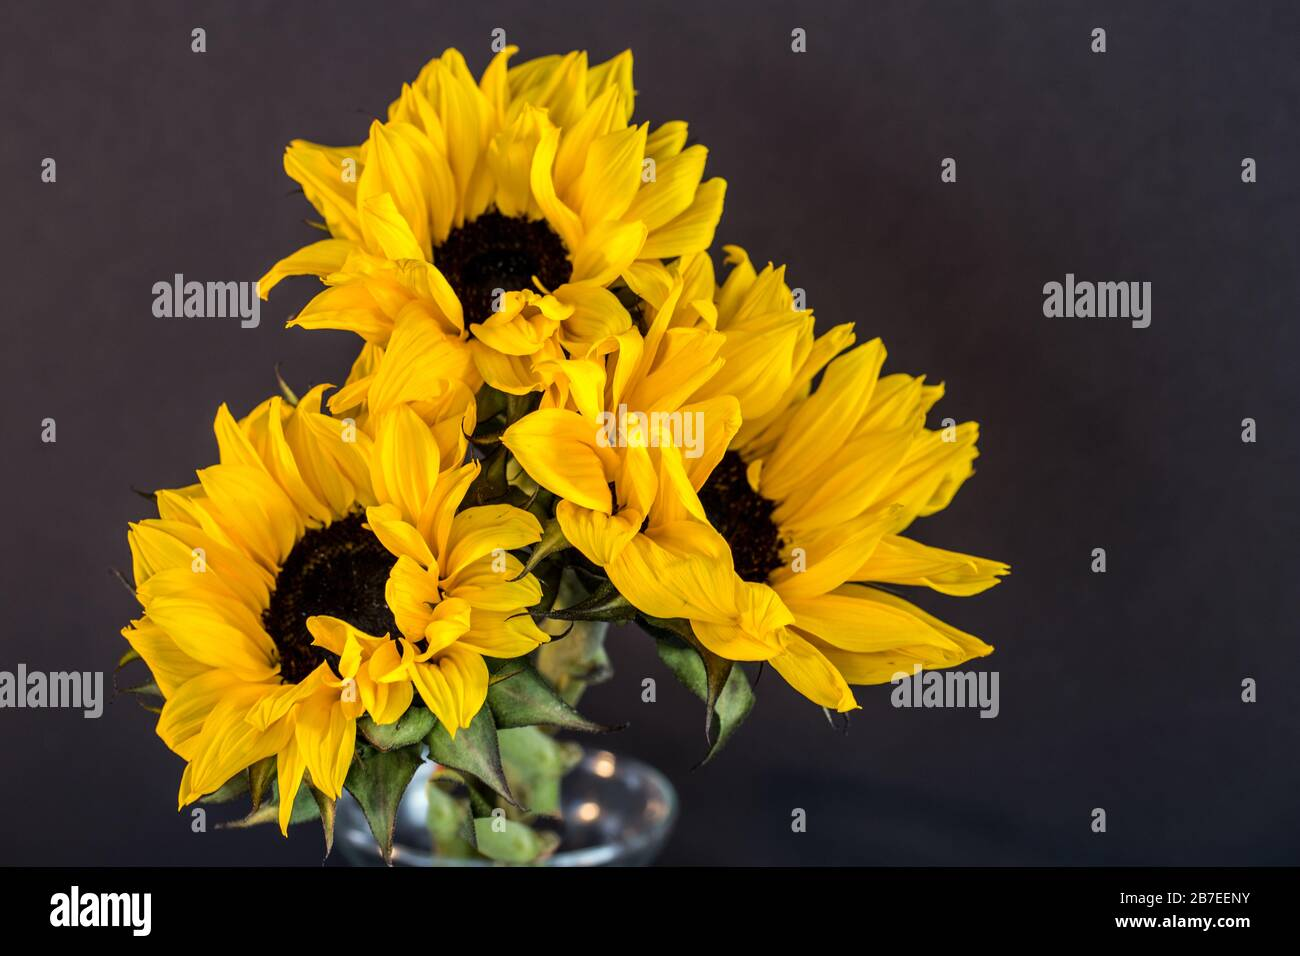 Sunflower Bouquet In A Glass Vase With A Dark Background Stock Photo Alamy